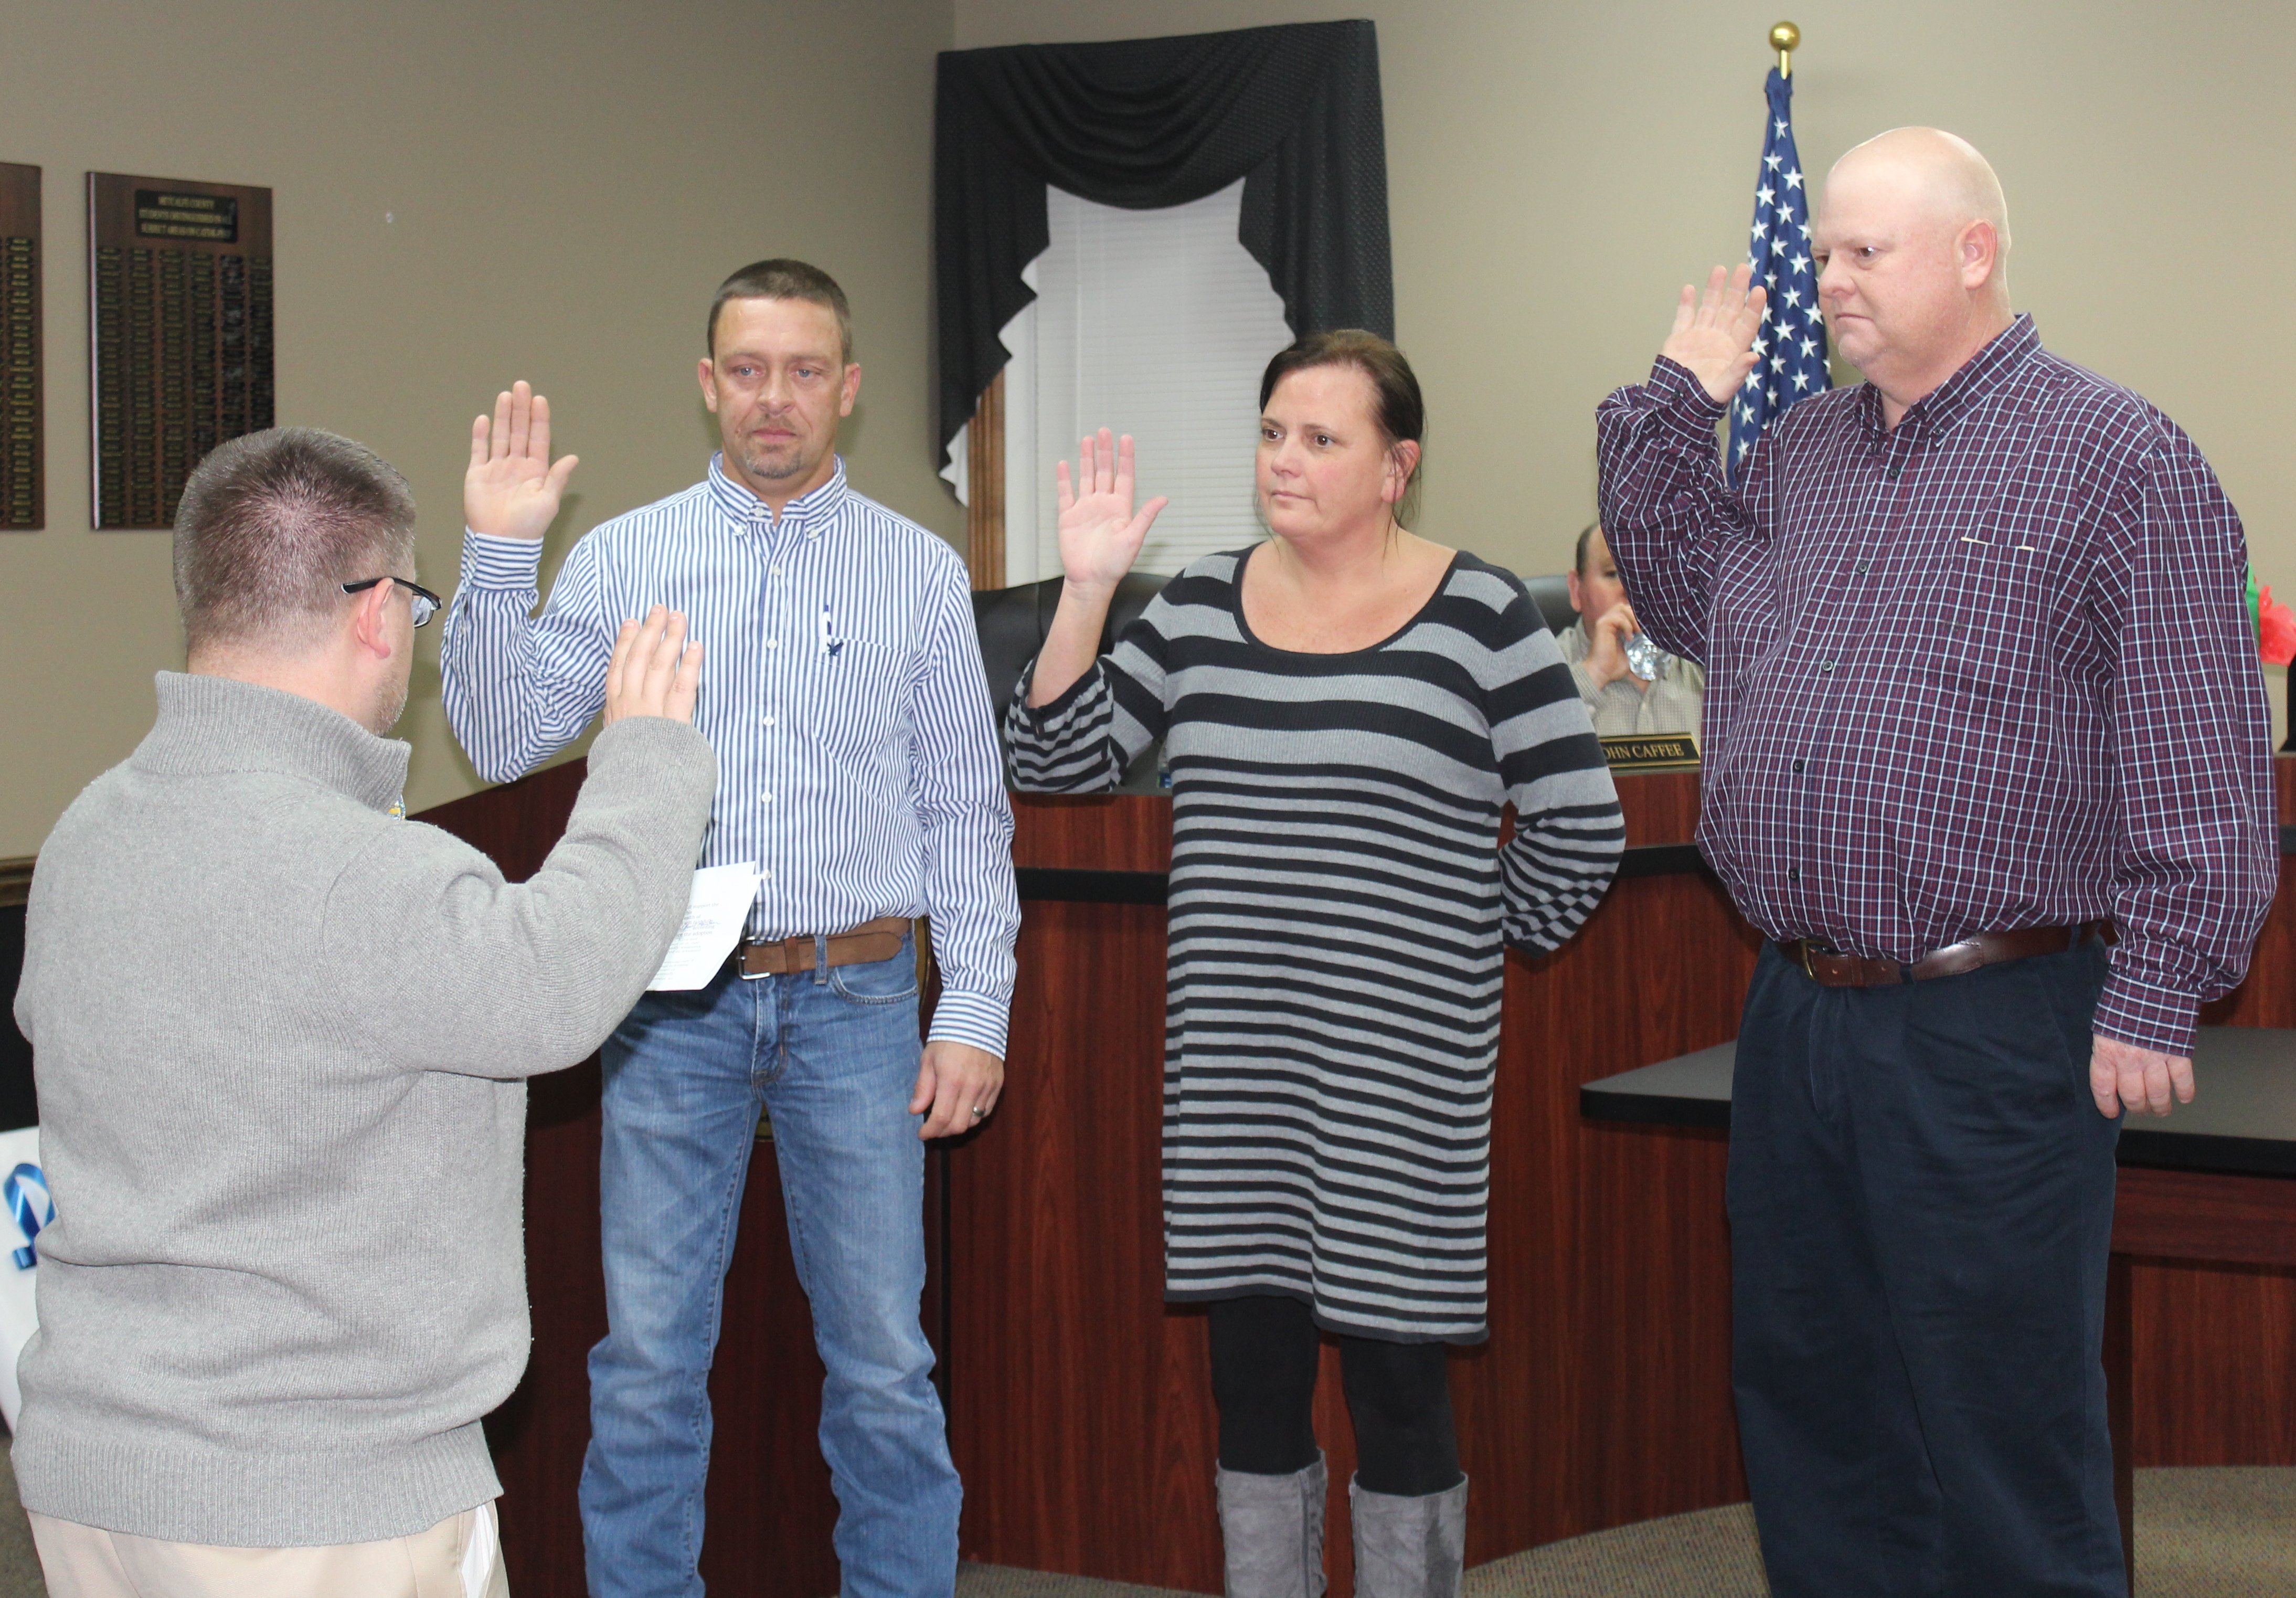 Swearing In of Re-Elected Board Members